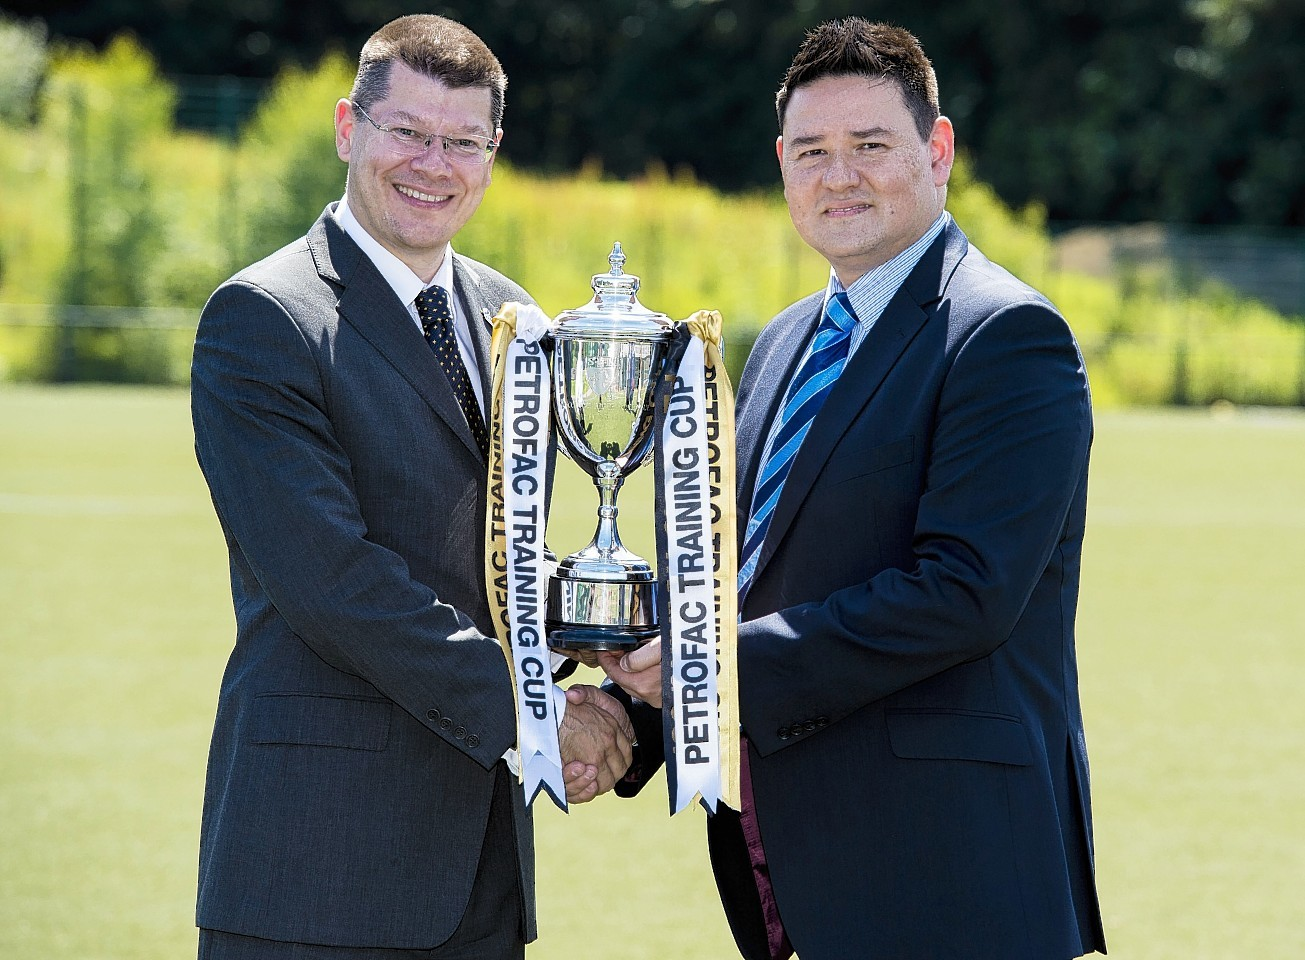 Petrofac have sponsored the Challenge Cup